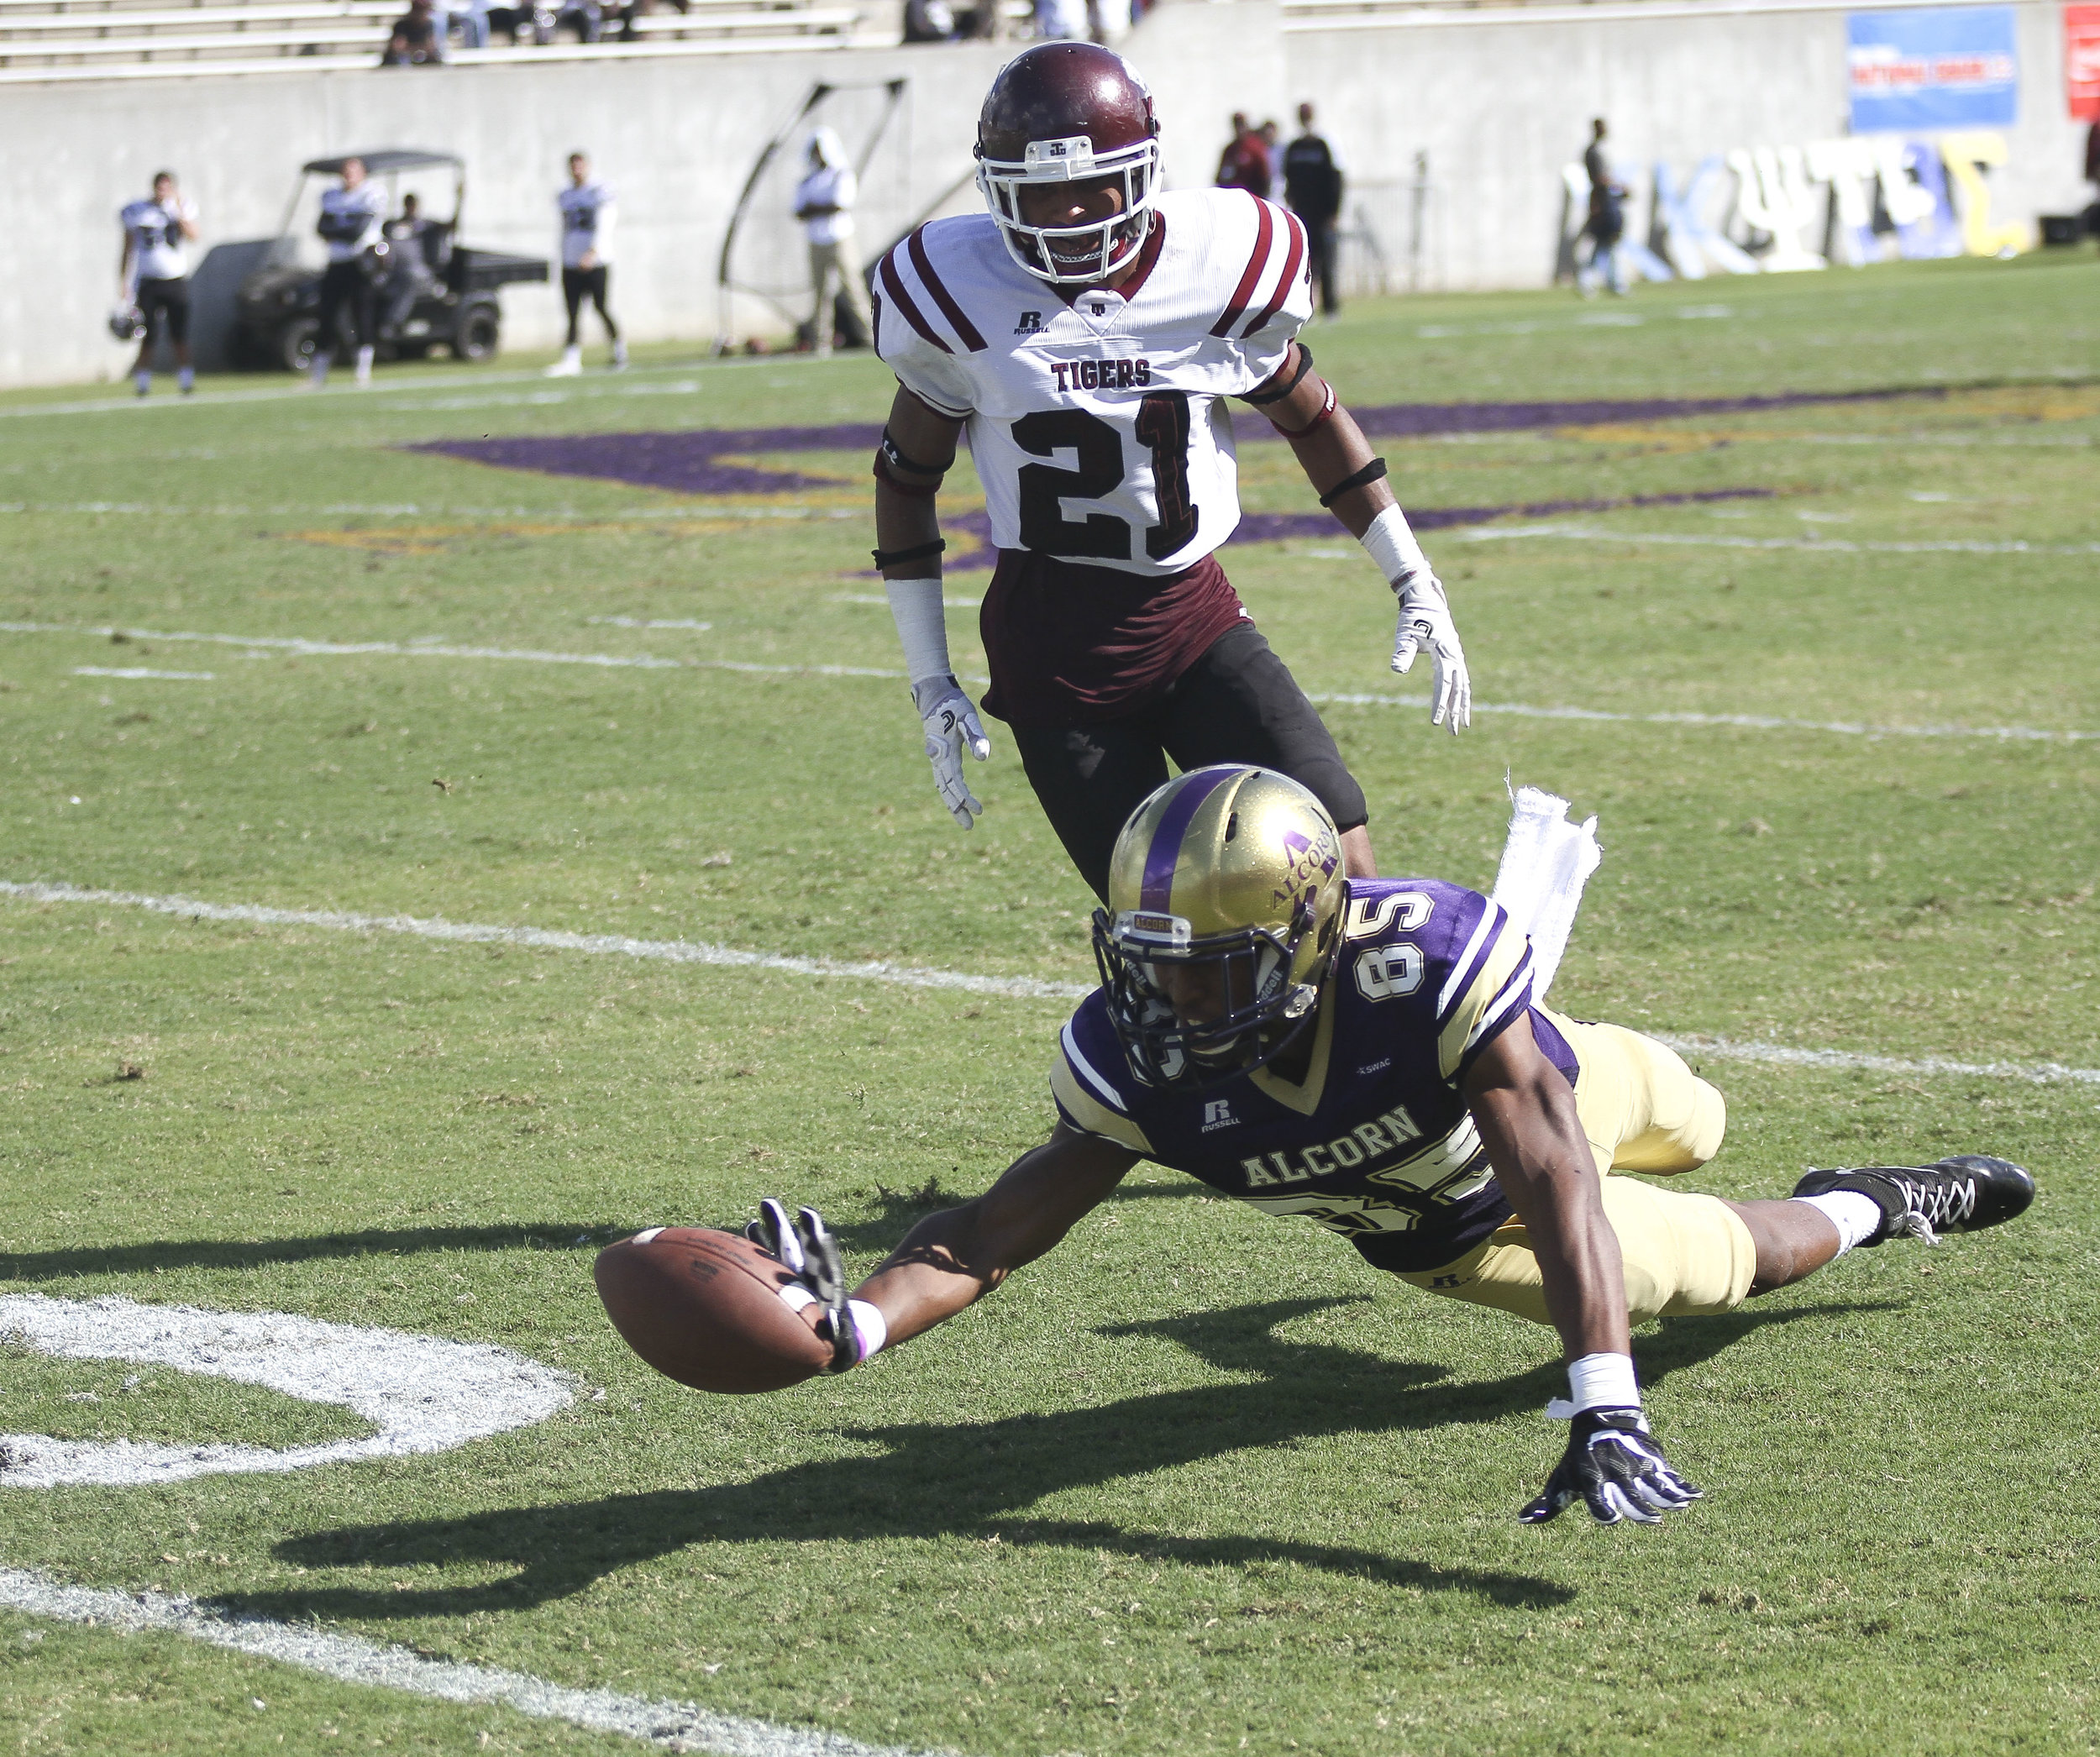 Norlando Veals dives for a pass during second quarter of play during Alcorn State's homecoming game. The Braves defeated the Tigers 23-20 to mark their fifth straight victory over Texas Southern.